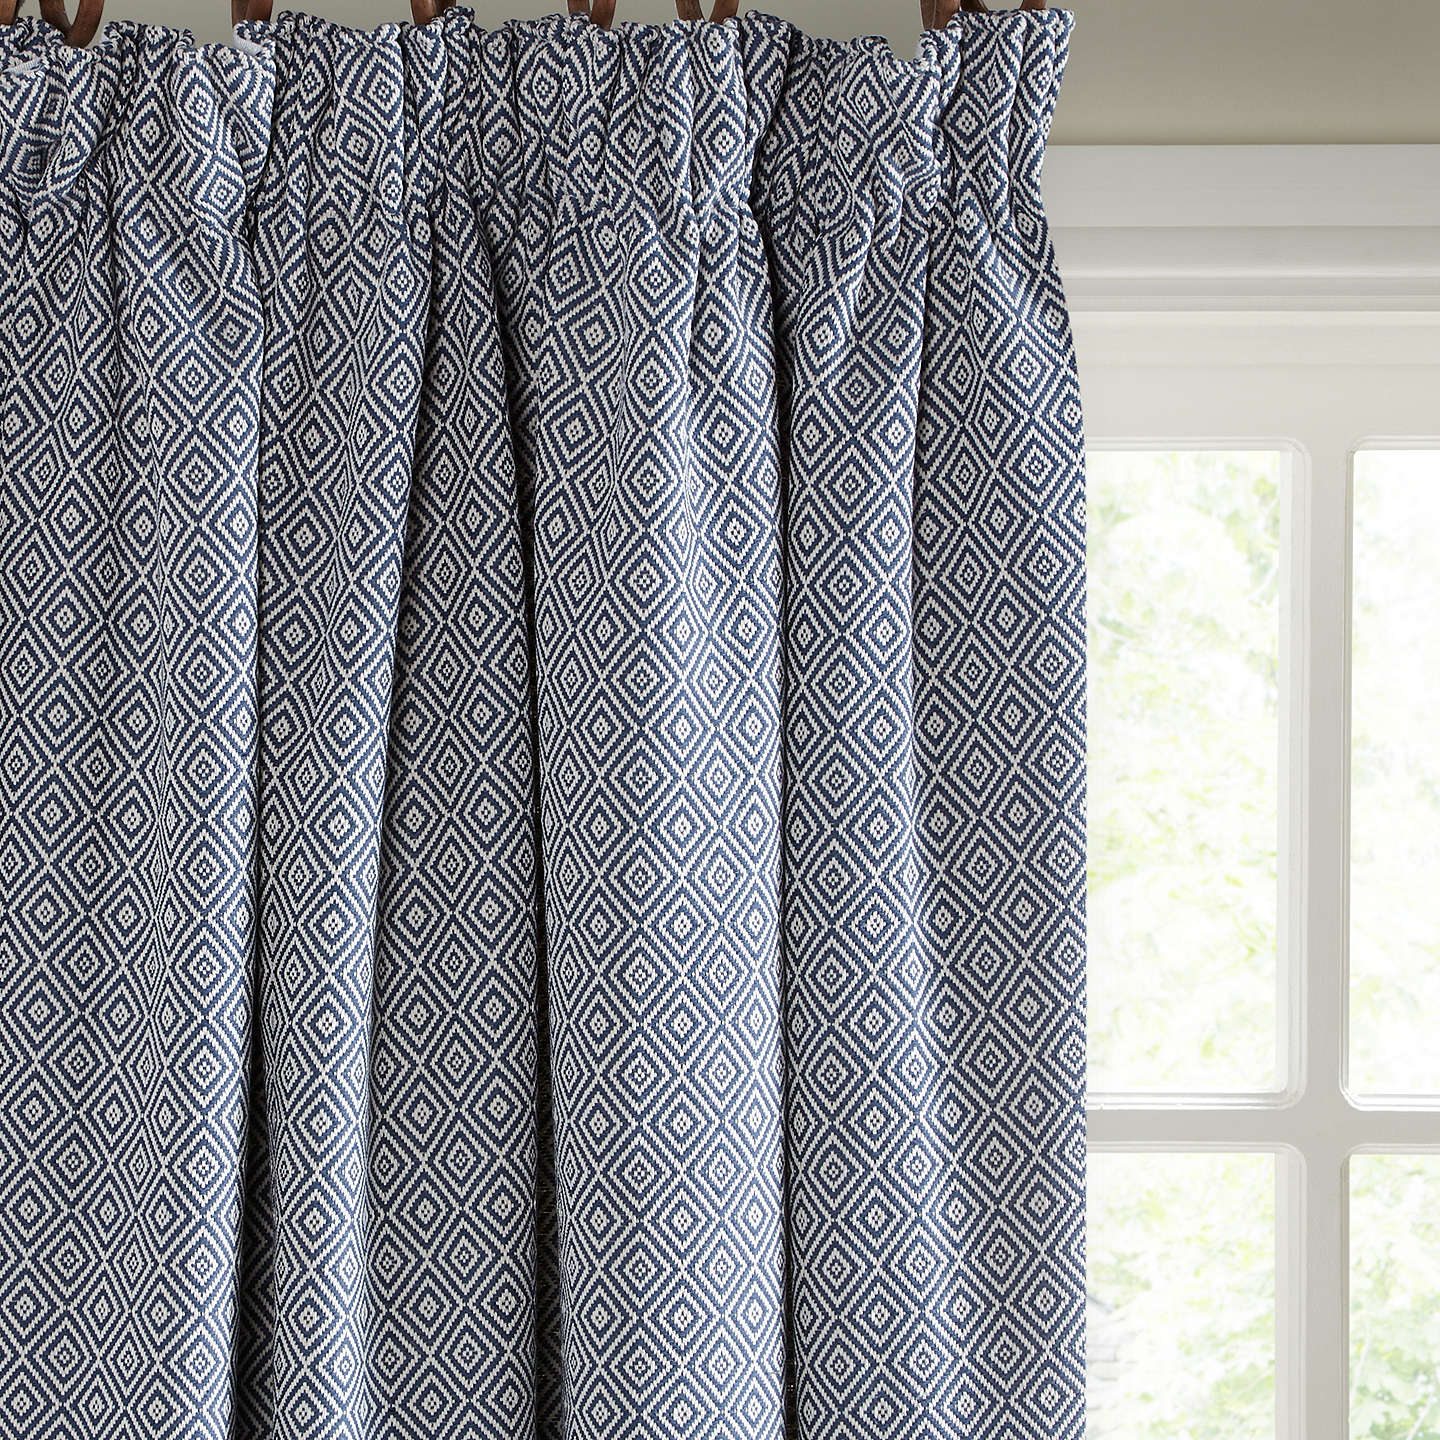 index helpful tutorial hand how pleated curtains make pleat lined to by curtain cartridge a sew